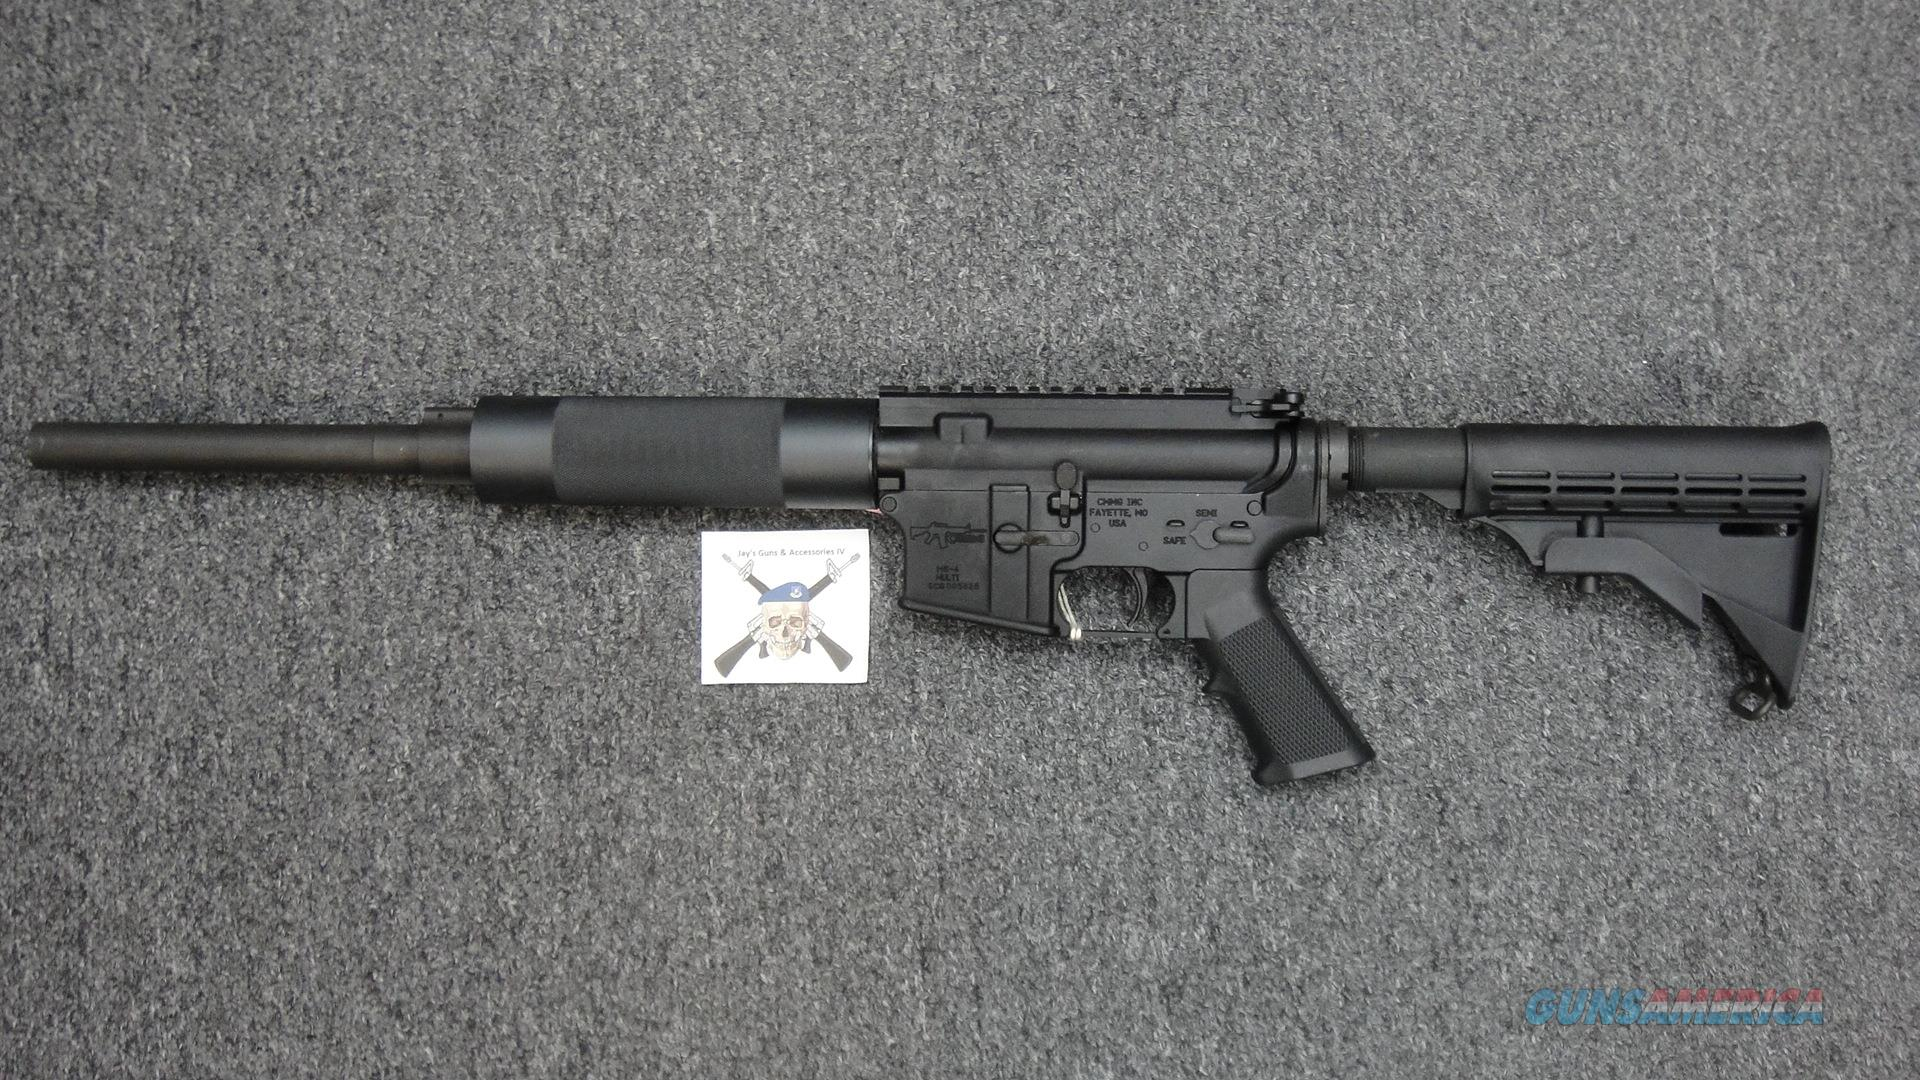 CMMG MK-4 5.56mm  Guns > Rifles > CMMG > CMMG Rifle